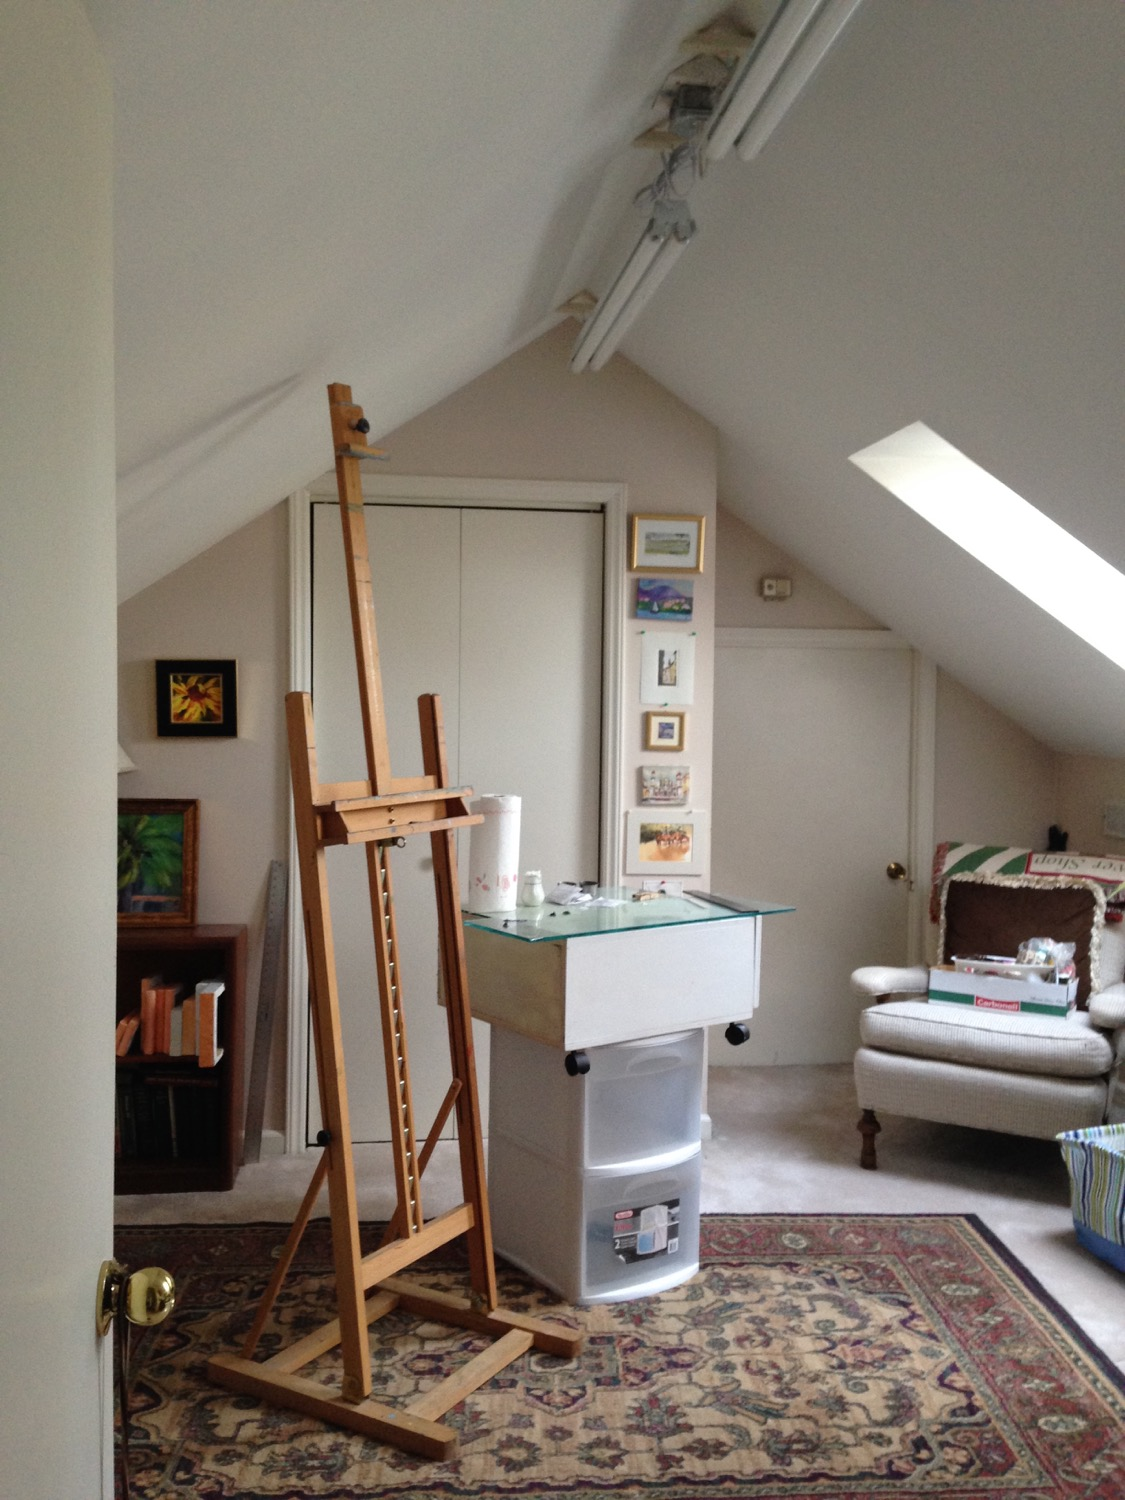 My new little painting studio at home